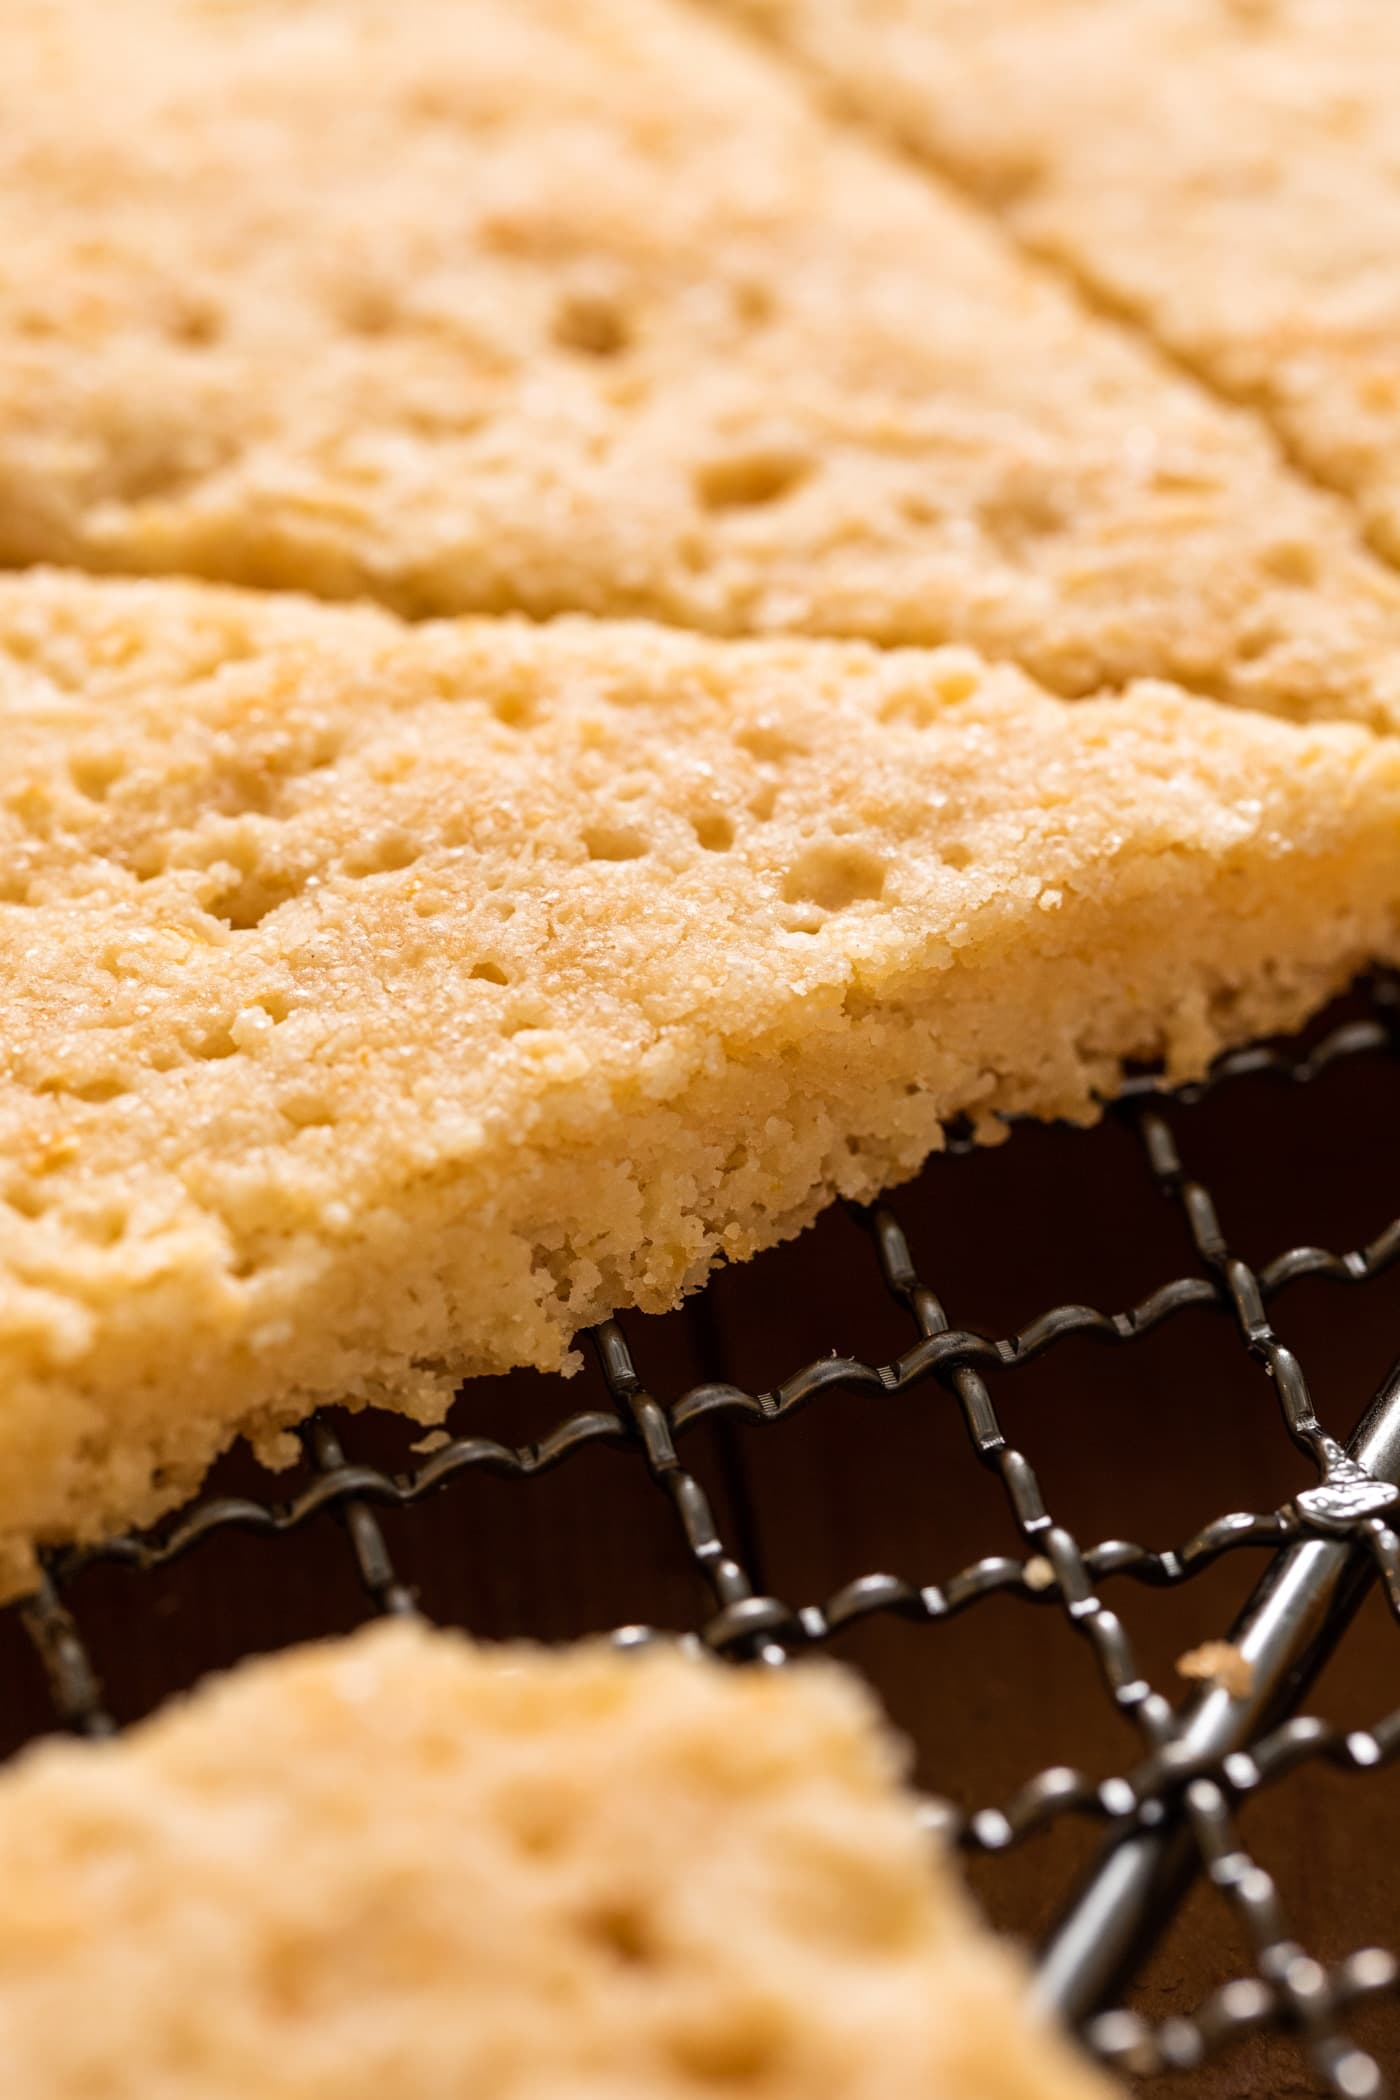 Close up view of golden colored lemon shortbread cookies sitting on metal cooling rack